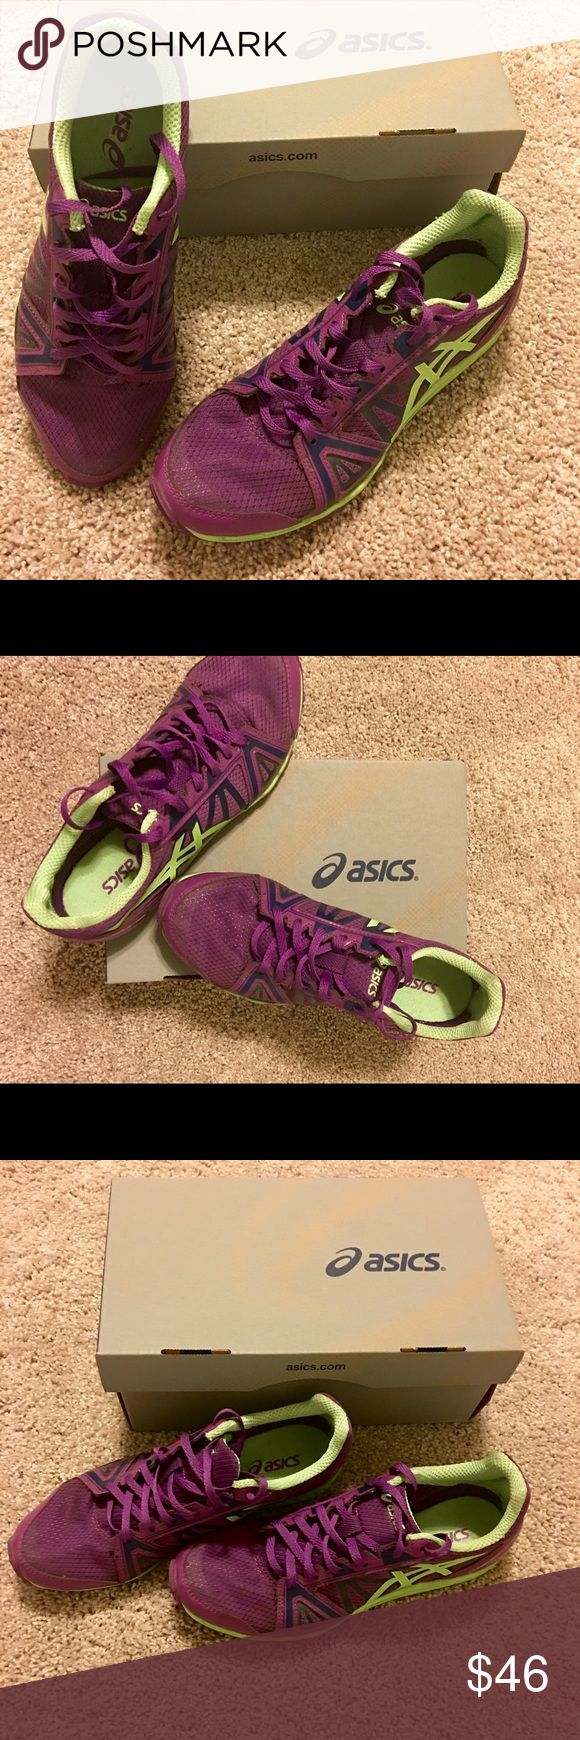 NEW ASICS Hyper-Rocketgirl XC Spike Shoe NEW ASICS Hyper-Rocketgirl XC spikes Cross Country/Track Spike Shoes. G559Y. Size USA 7. Color Grape. New. Very pretty and Comfortable. Asics Shoes Athletic Shoes